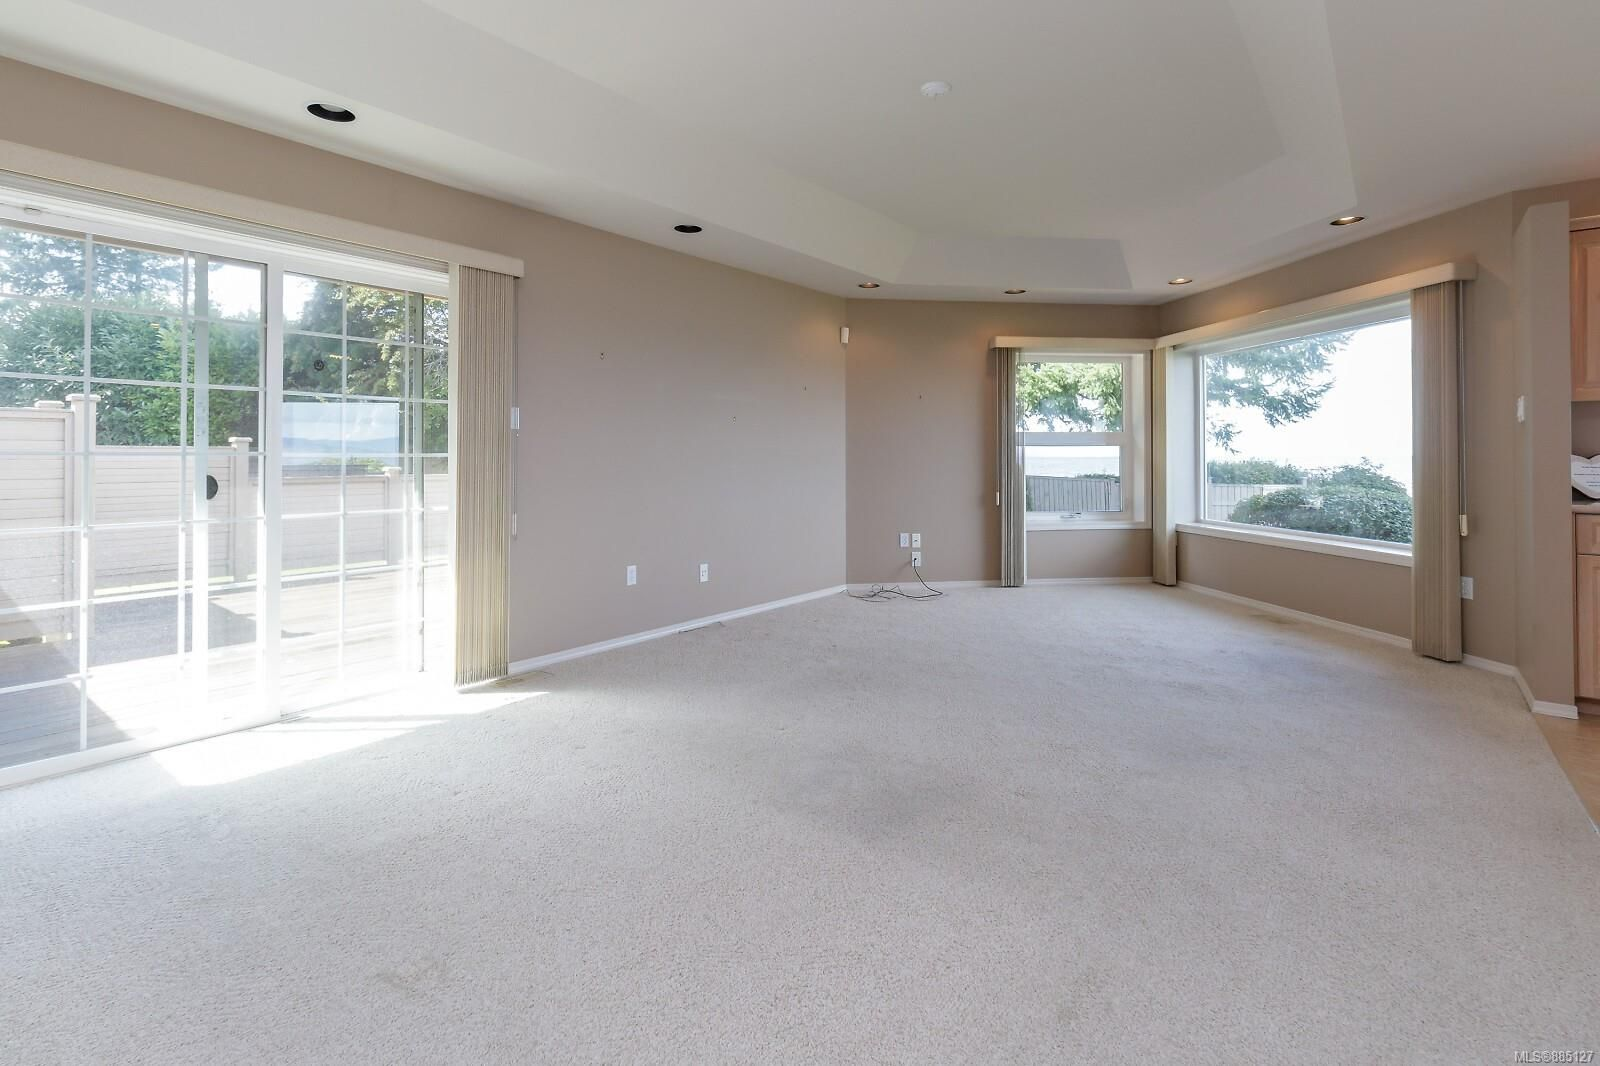 Photo 5: Photos: 26 529 Johnstone Rd in : PQ French Creek Row/Townhouse for sale (Parksville/Qualicum)  : MLS®# 885127